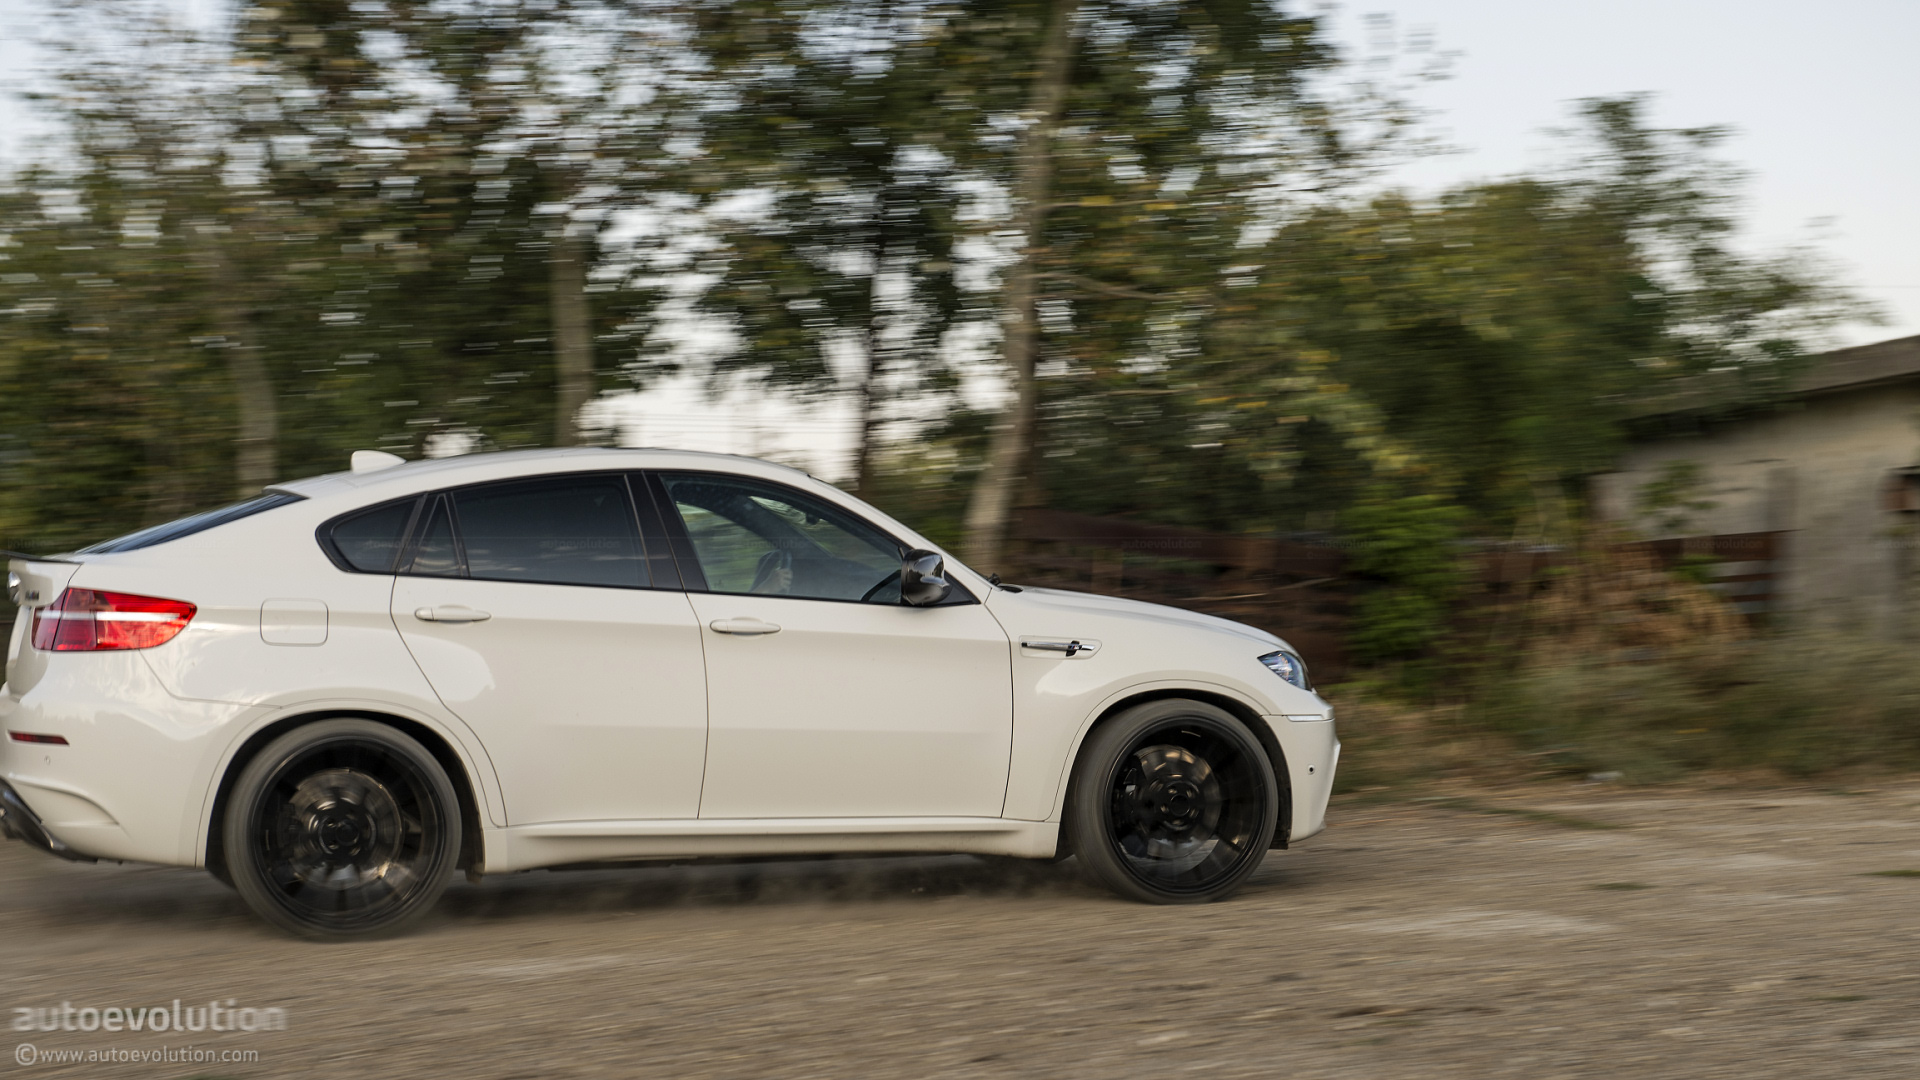 Bmw X6 M Review Autoevolution